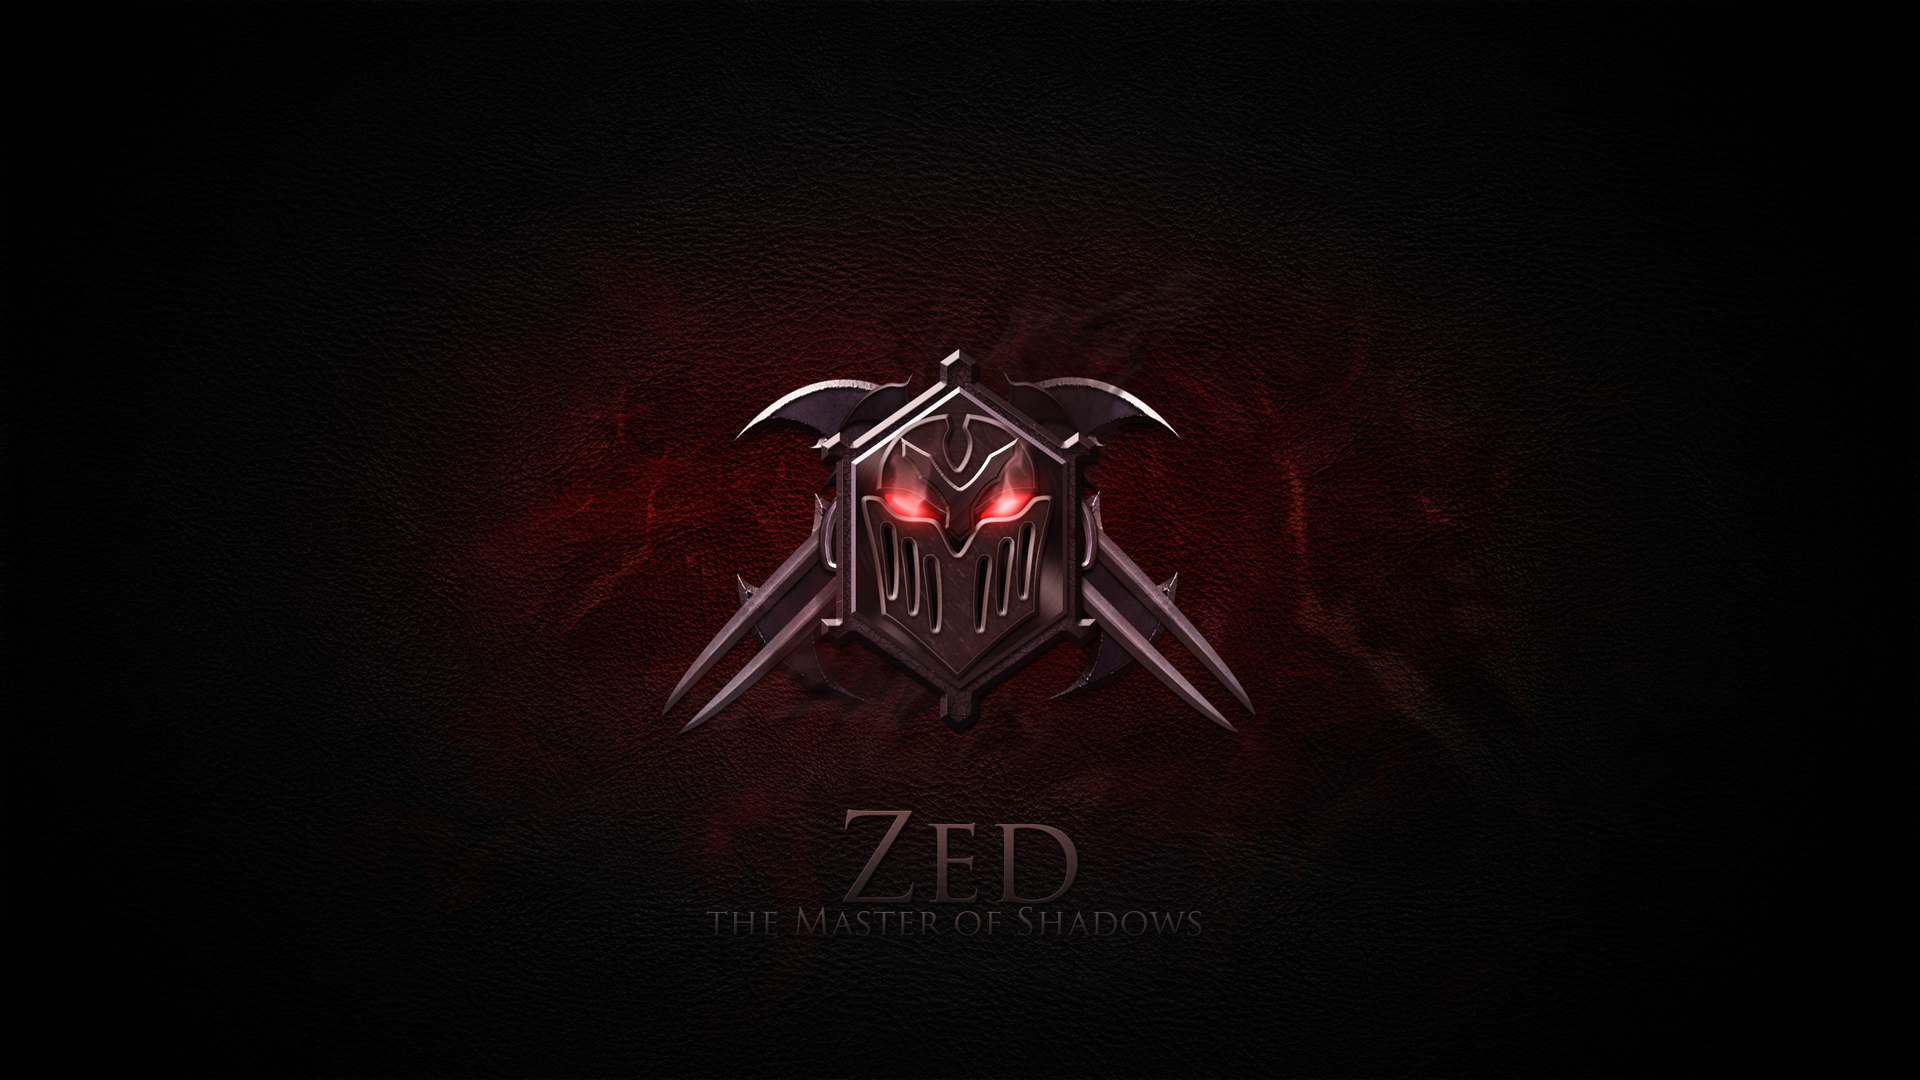 Zed Lol Icon Wallpaper Hd